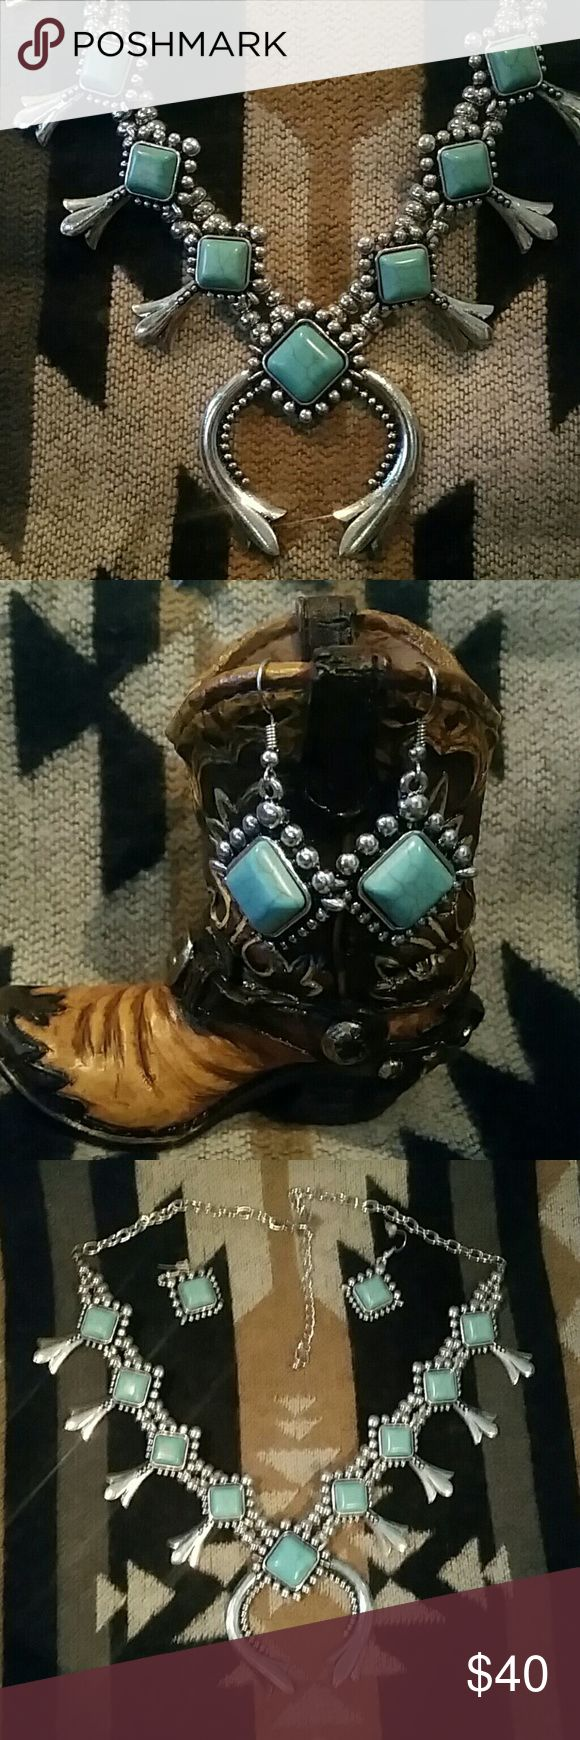 LARGE SILVERTONE TURQUOISE Squash Blossom Set Silvertone metal with genuine turquoise. The pendant is large and measures 2 inches by 2 Inches. While this is not the higher price Squash Blossom necklaces you see that are made by the Native Americans, it is certainly not a piece to be overlooked. Yes this is higher-end costume jewelry and you won't be disappointed! You can own a Squash Blossom necklace without paying the hundreds of dollars to get it! Matching earrings included. PRICE IS FIRM…